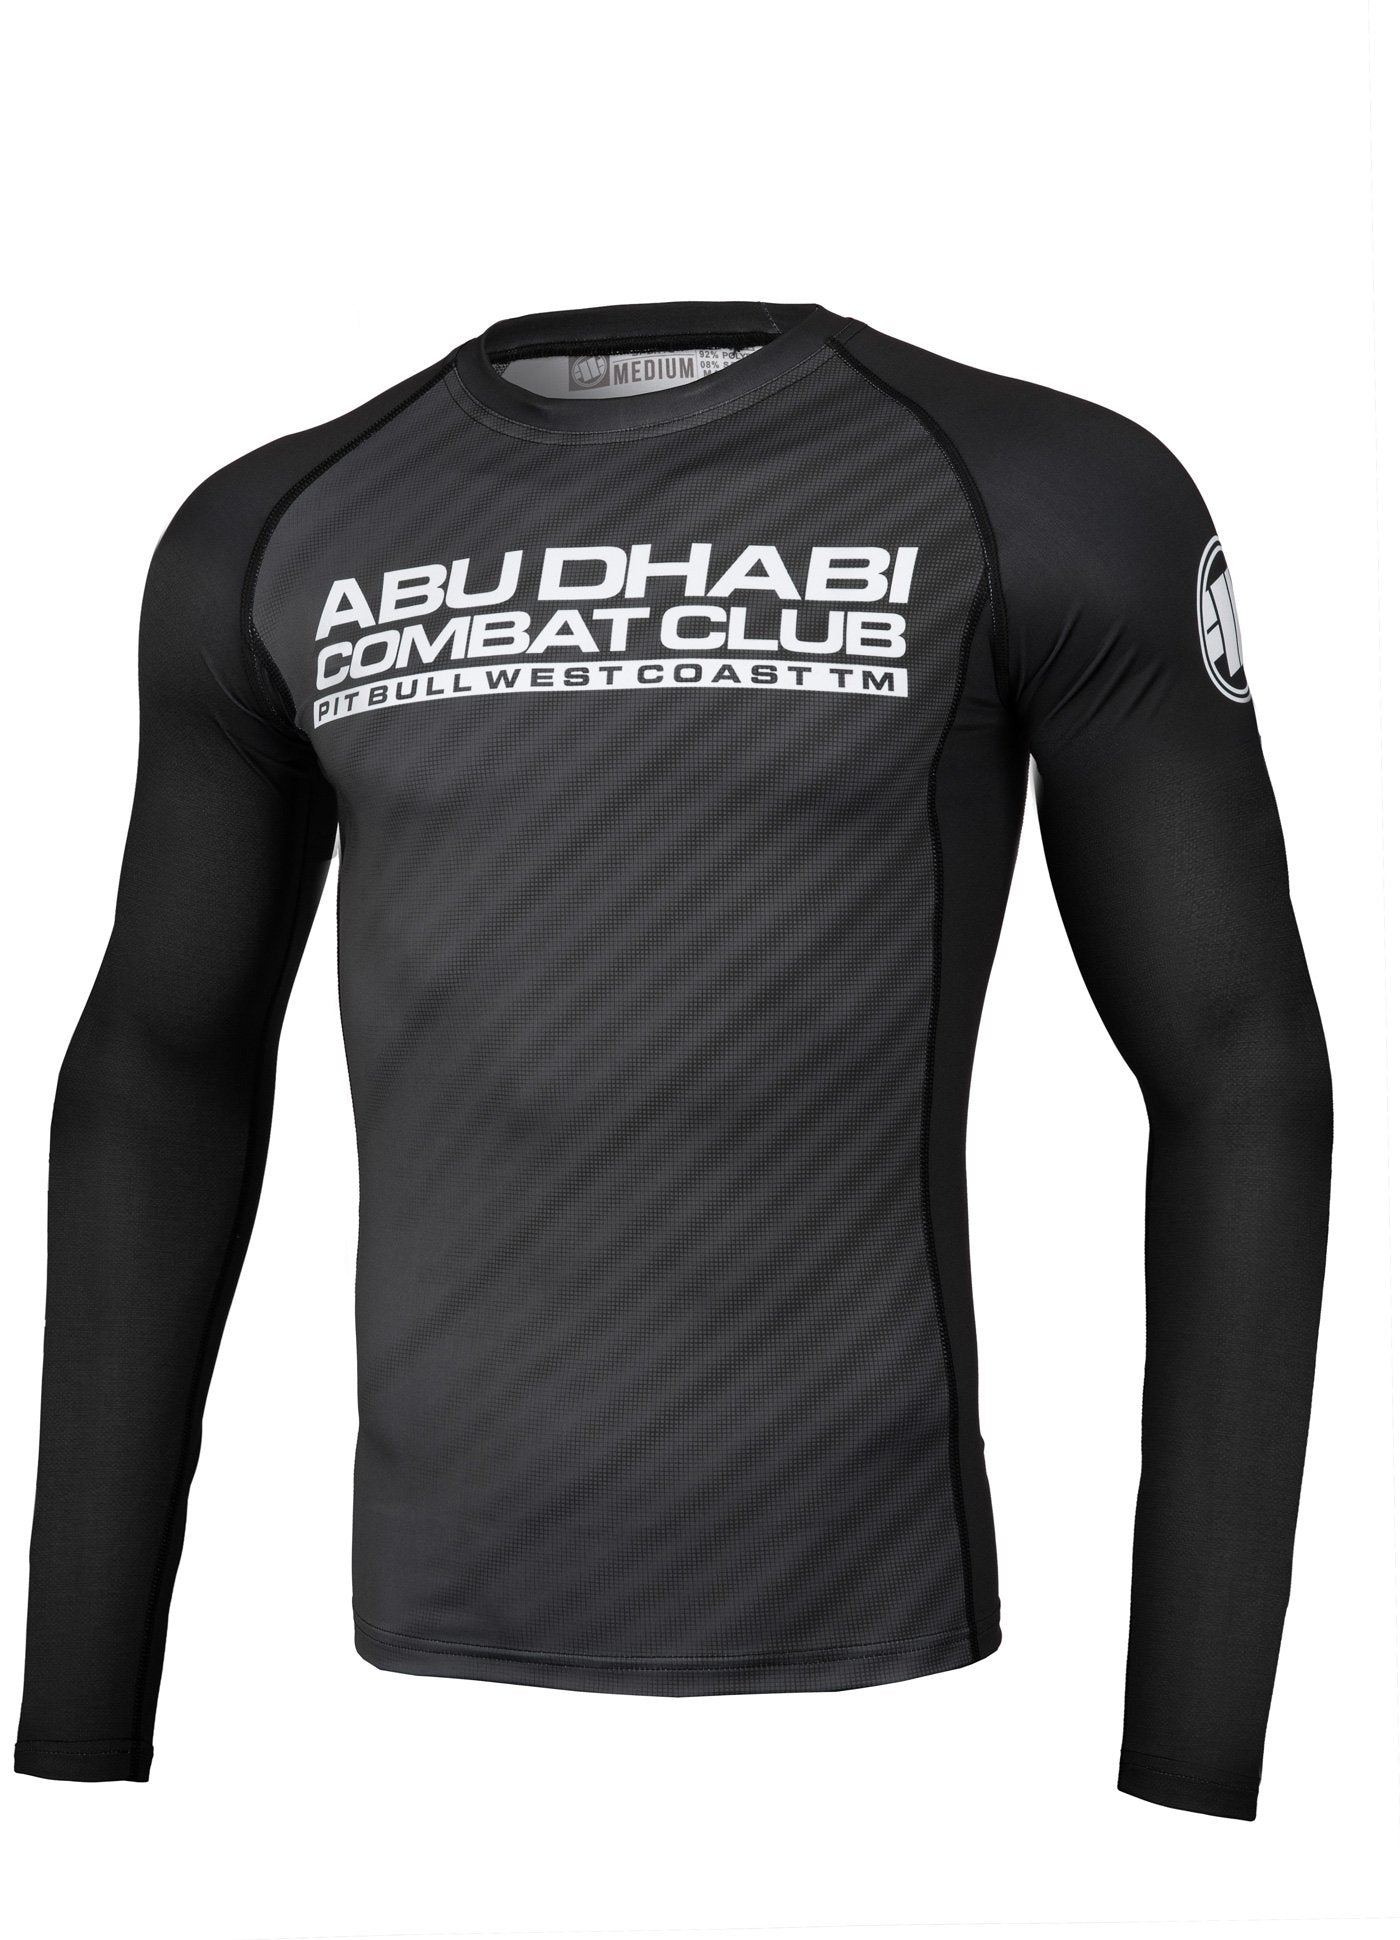 ADCC raster Long Sleeve Rashguard - Pitbull West Coast U.S.A.